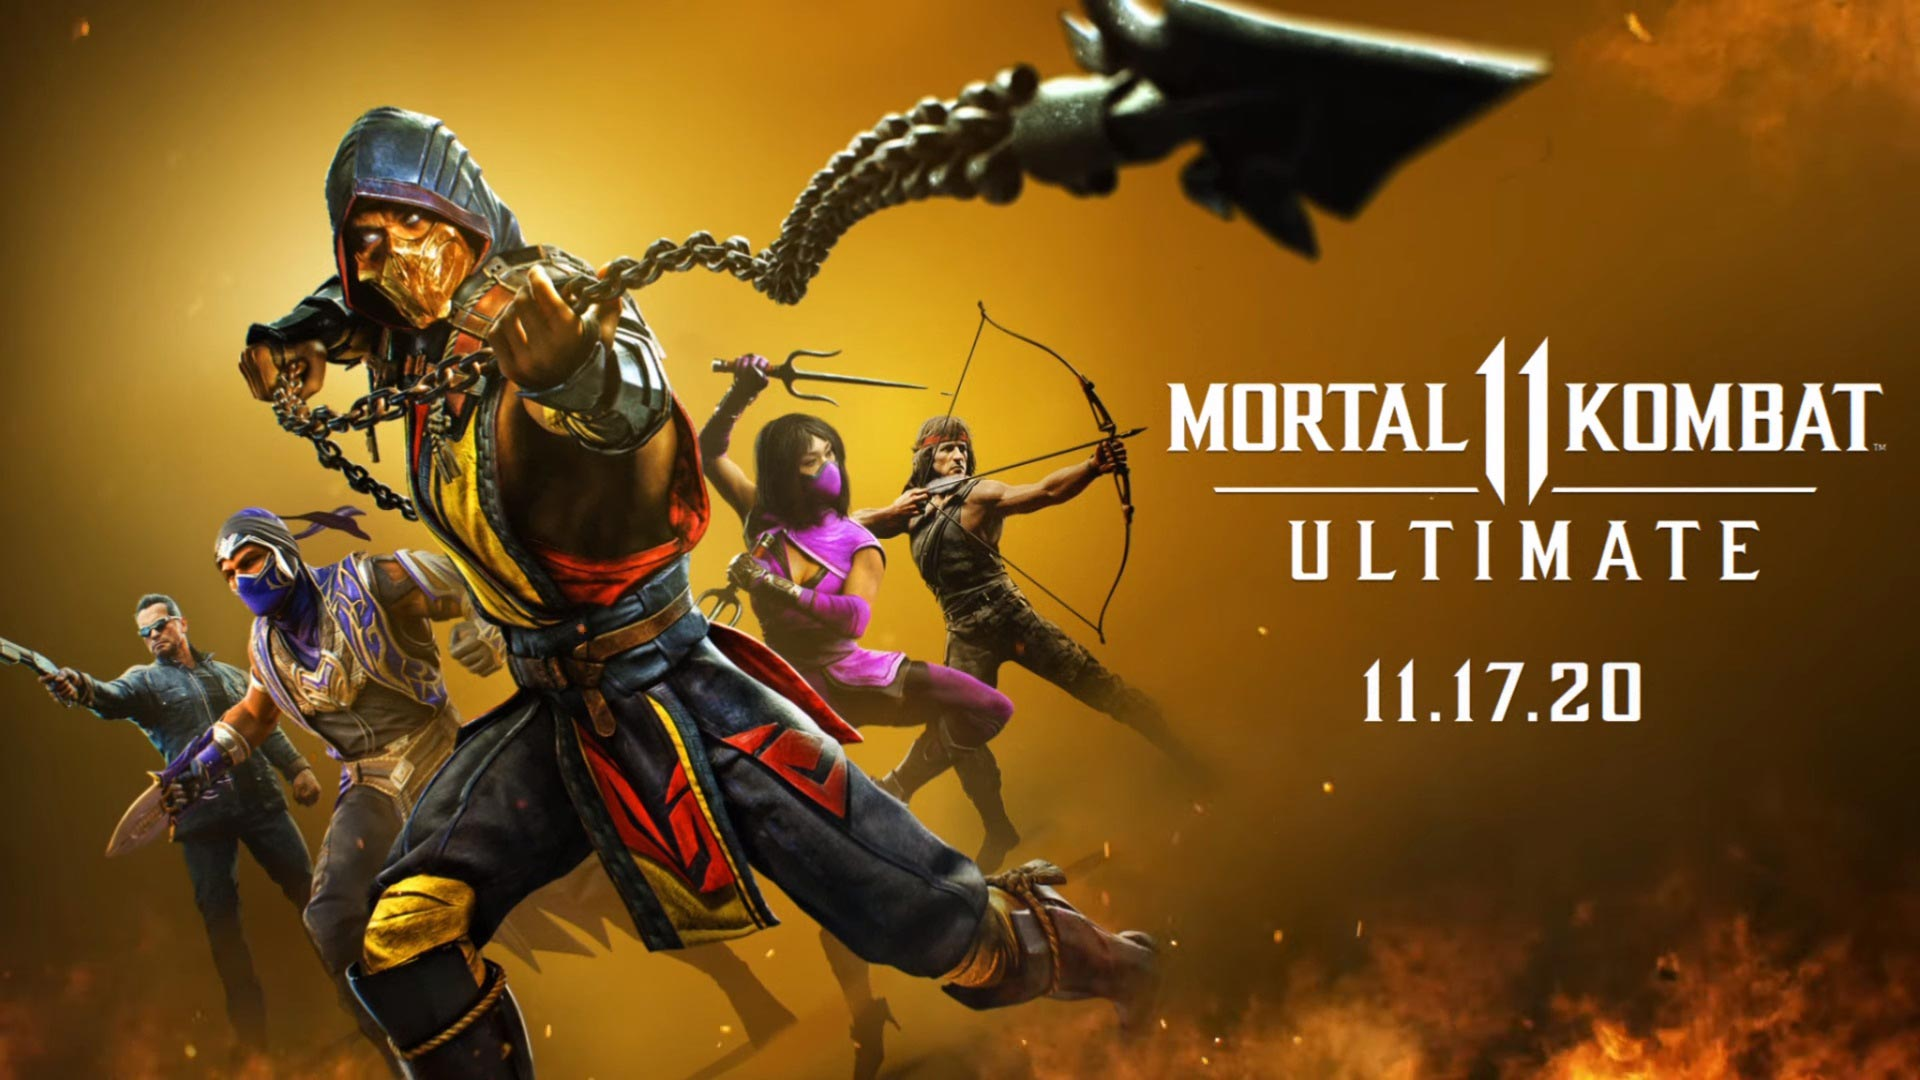 Mortal Kombat 11: Ultimate 11 out of 14 image gallery